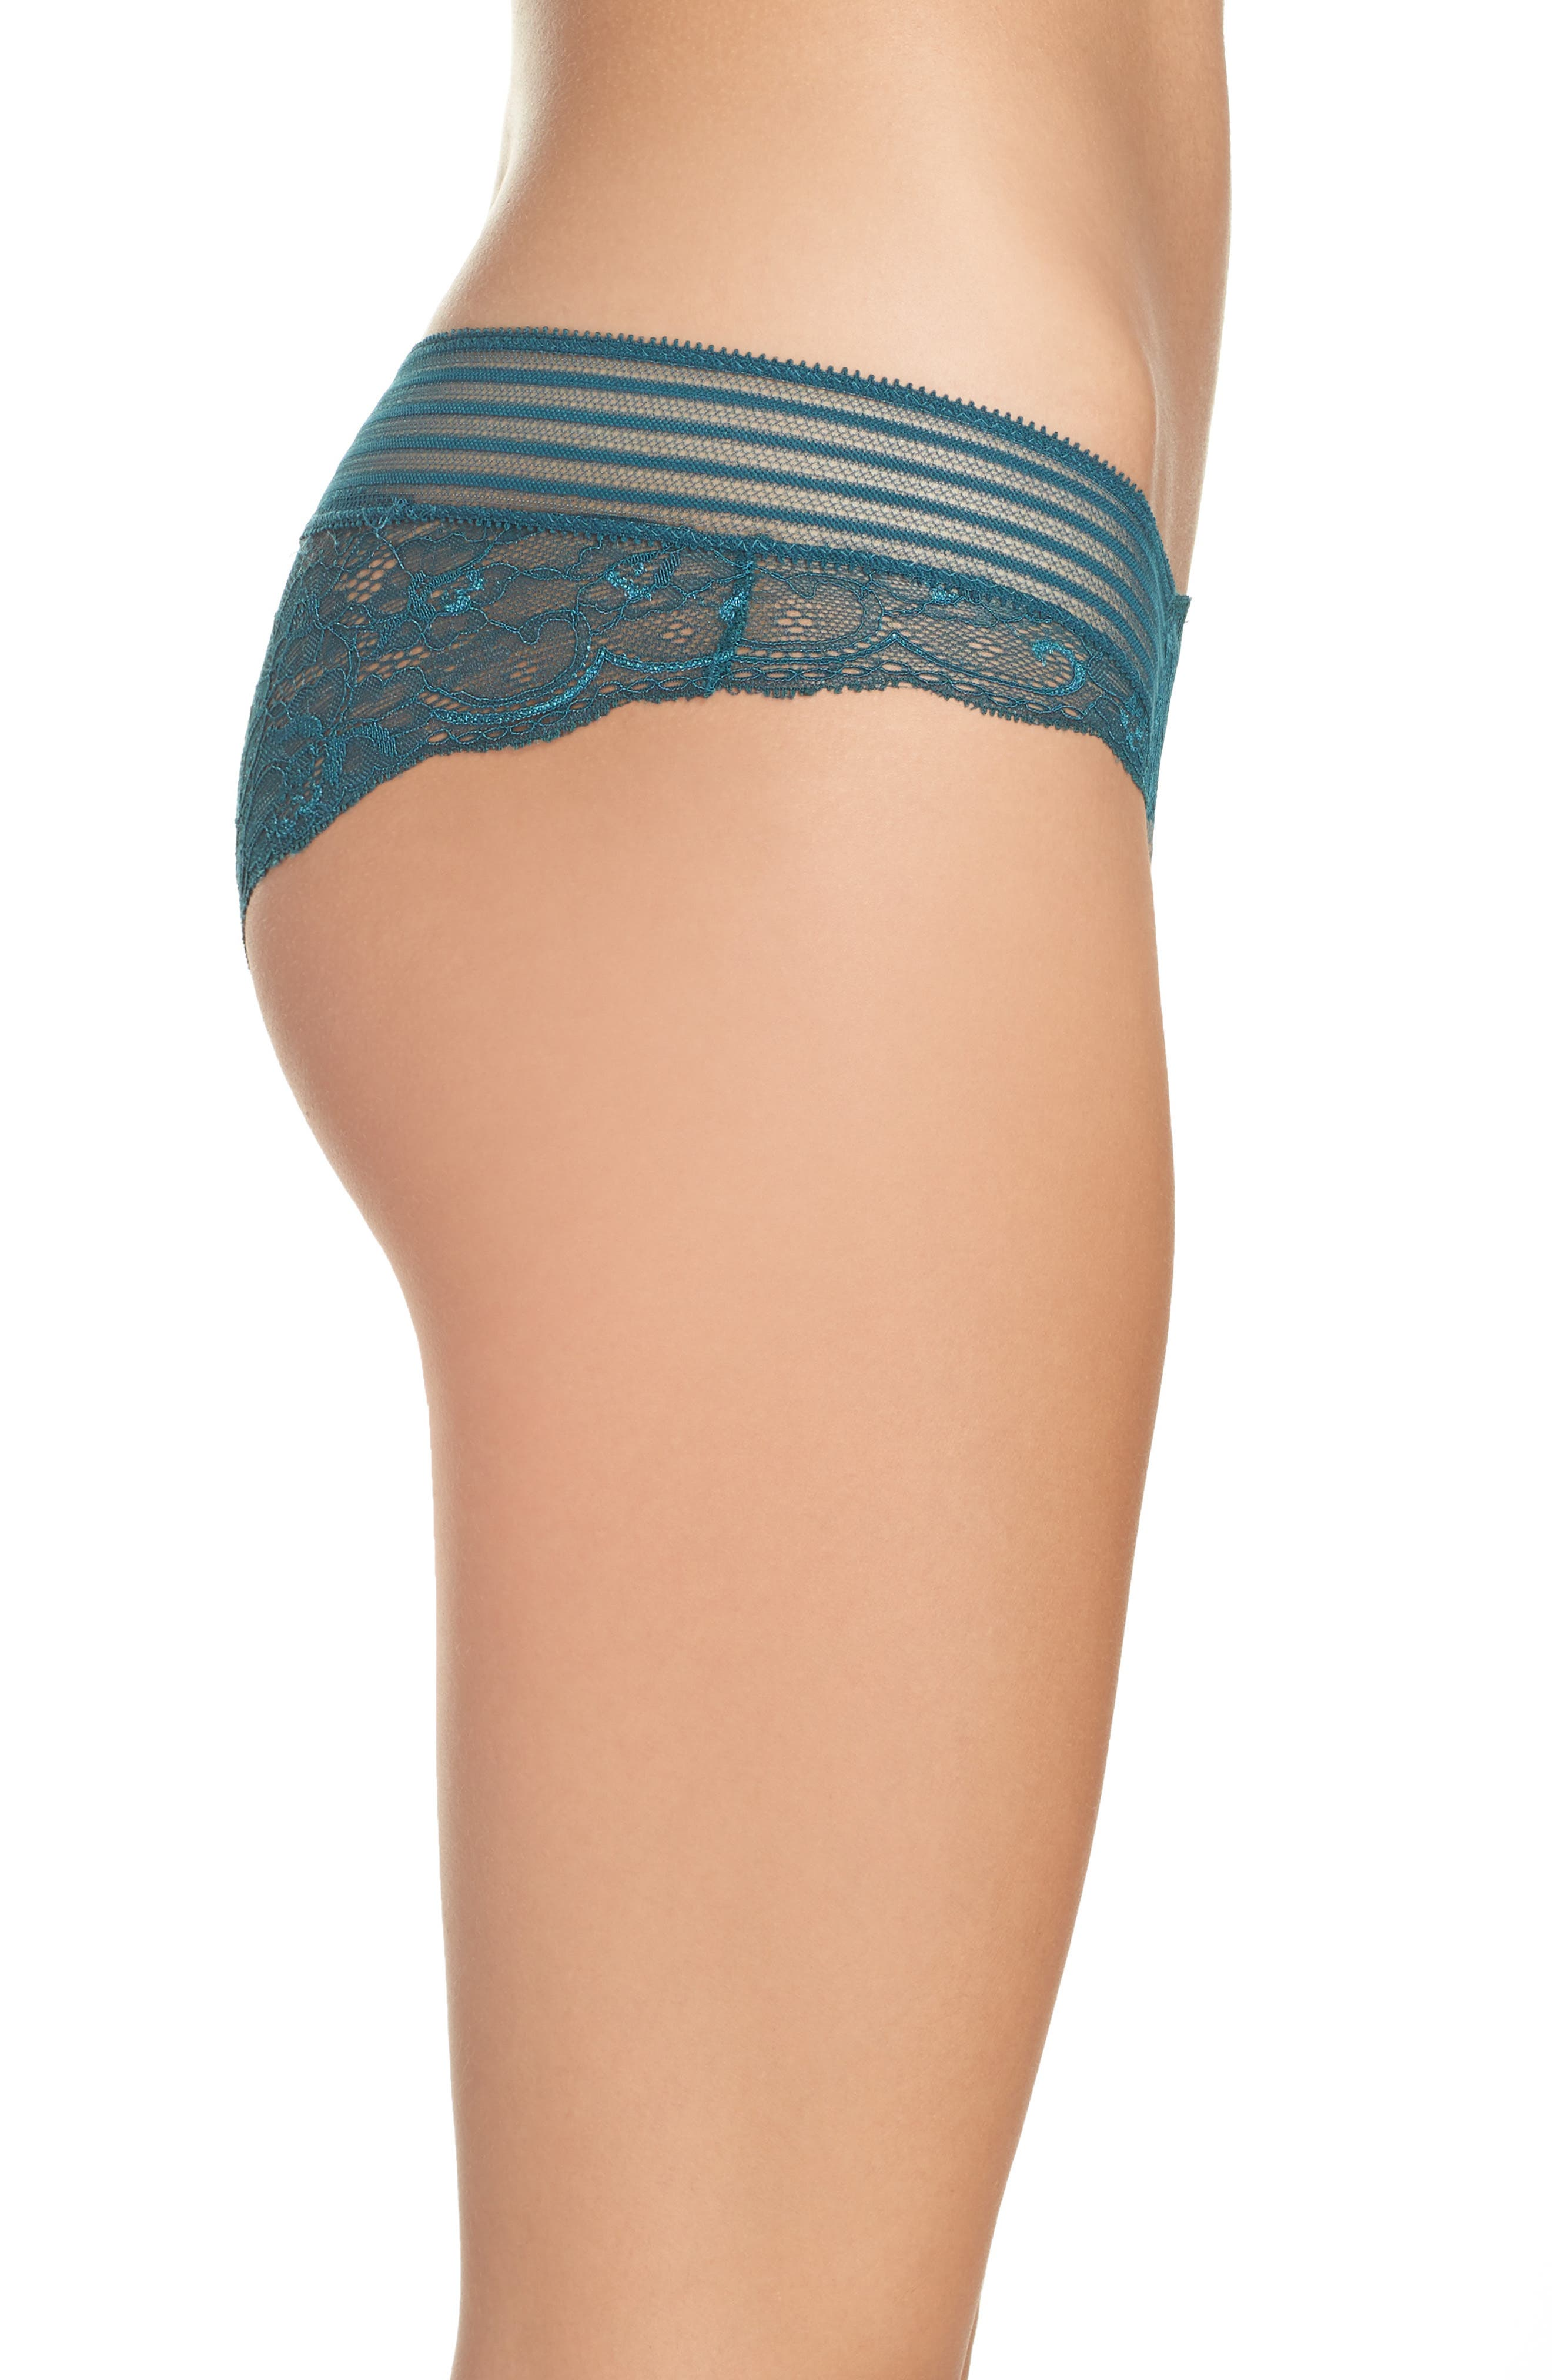 Alternate Image 3  - Sam Edelman Lace Hipster Panties (3 for $33)